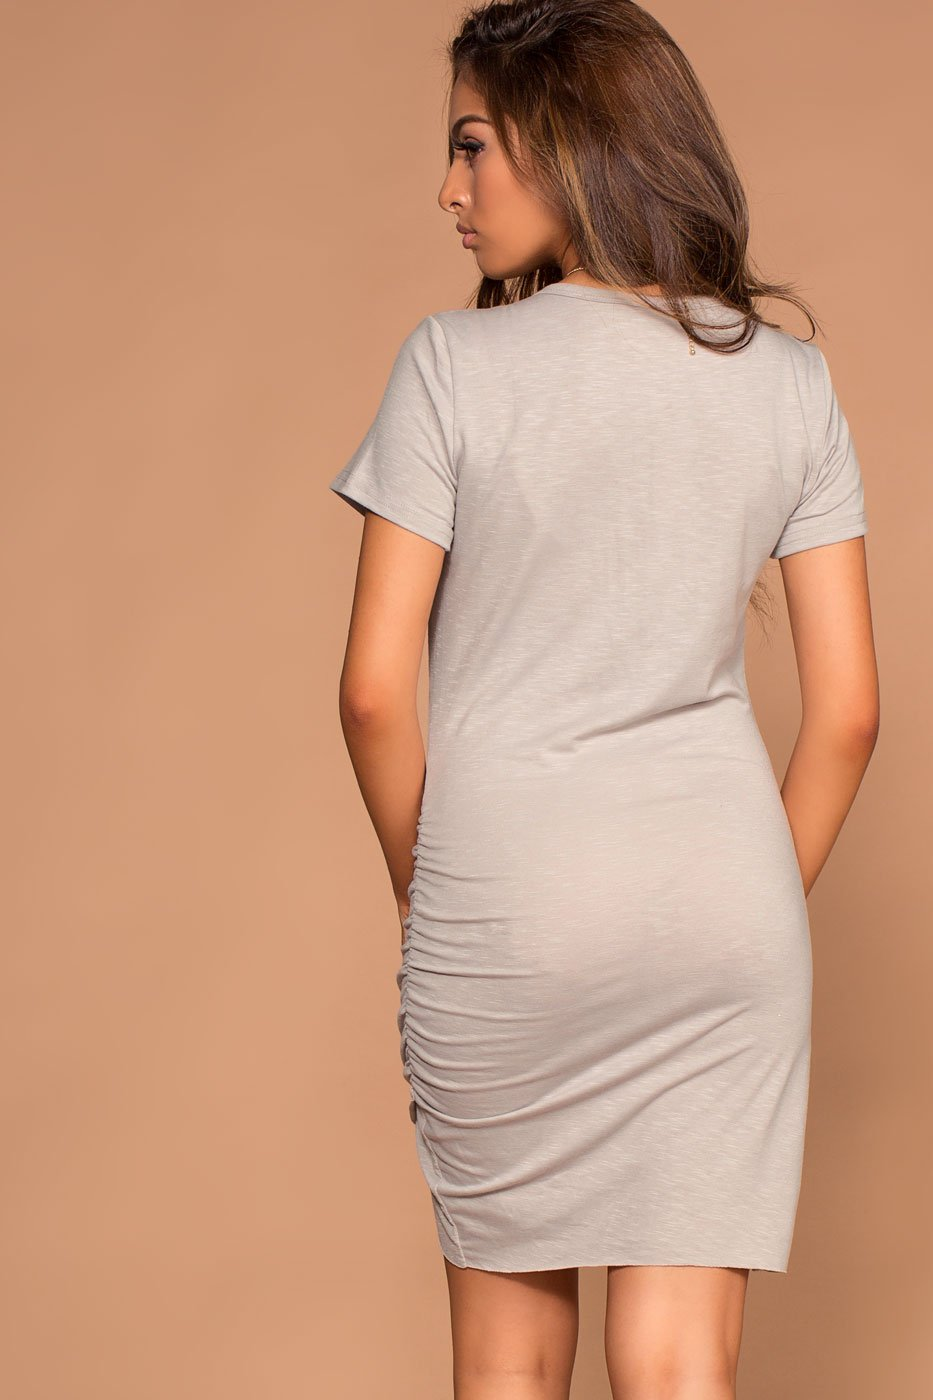 Dresses - Cassi Grey Ruched T-Shirt Dress